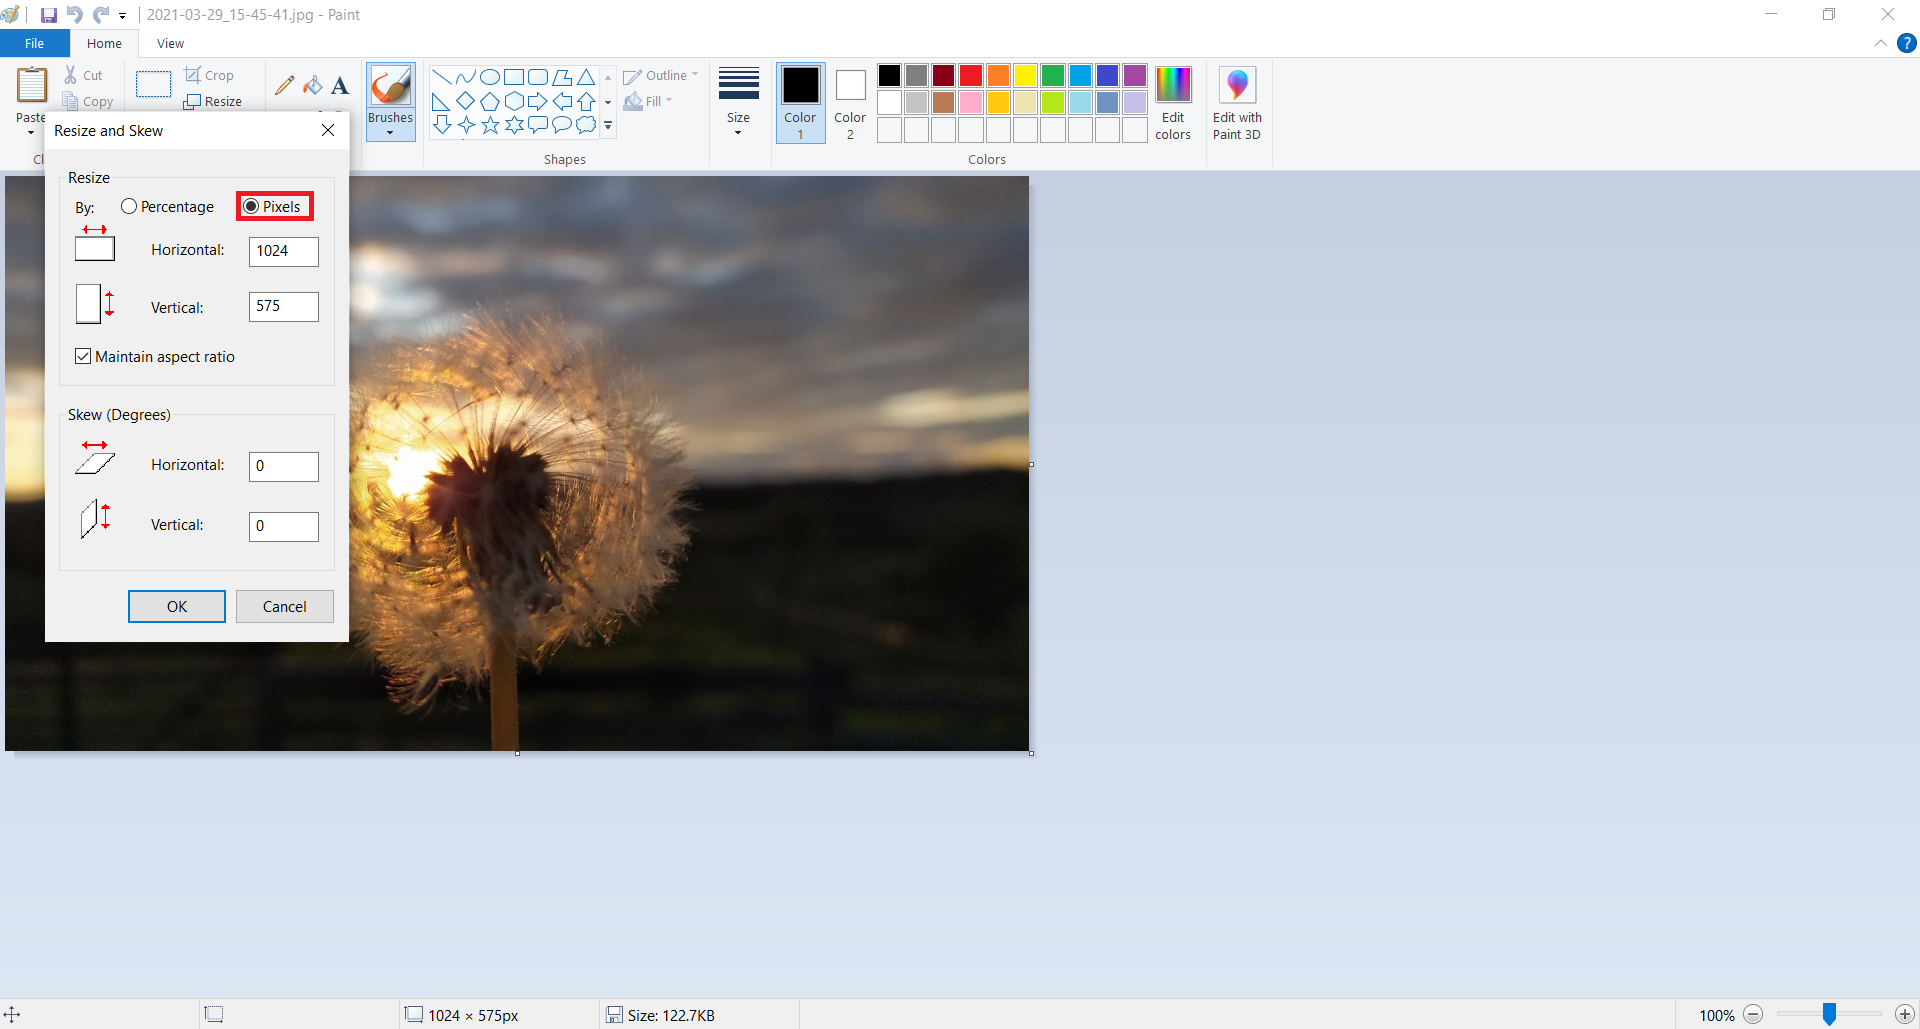 Convert low resolution image to high resolution on Windows